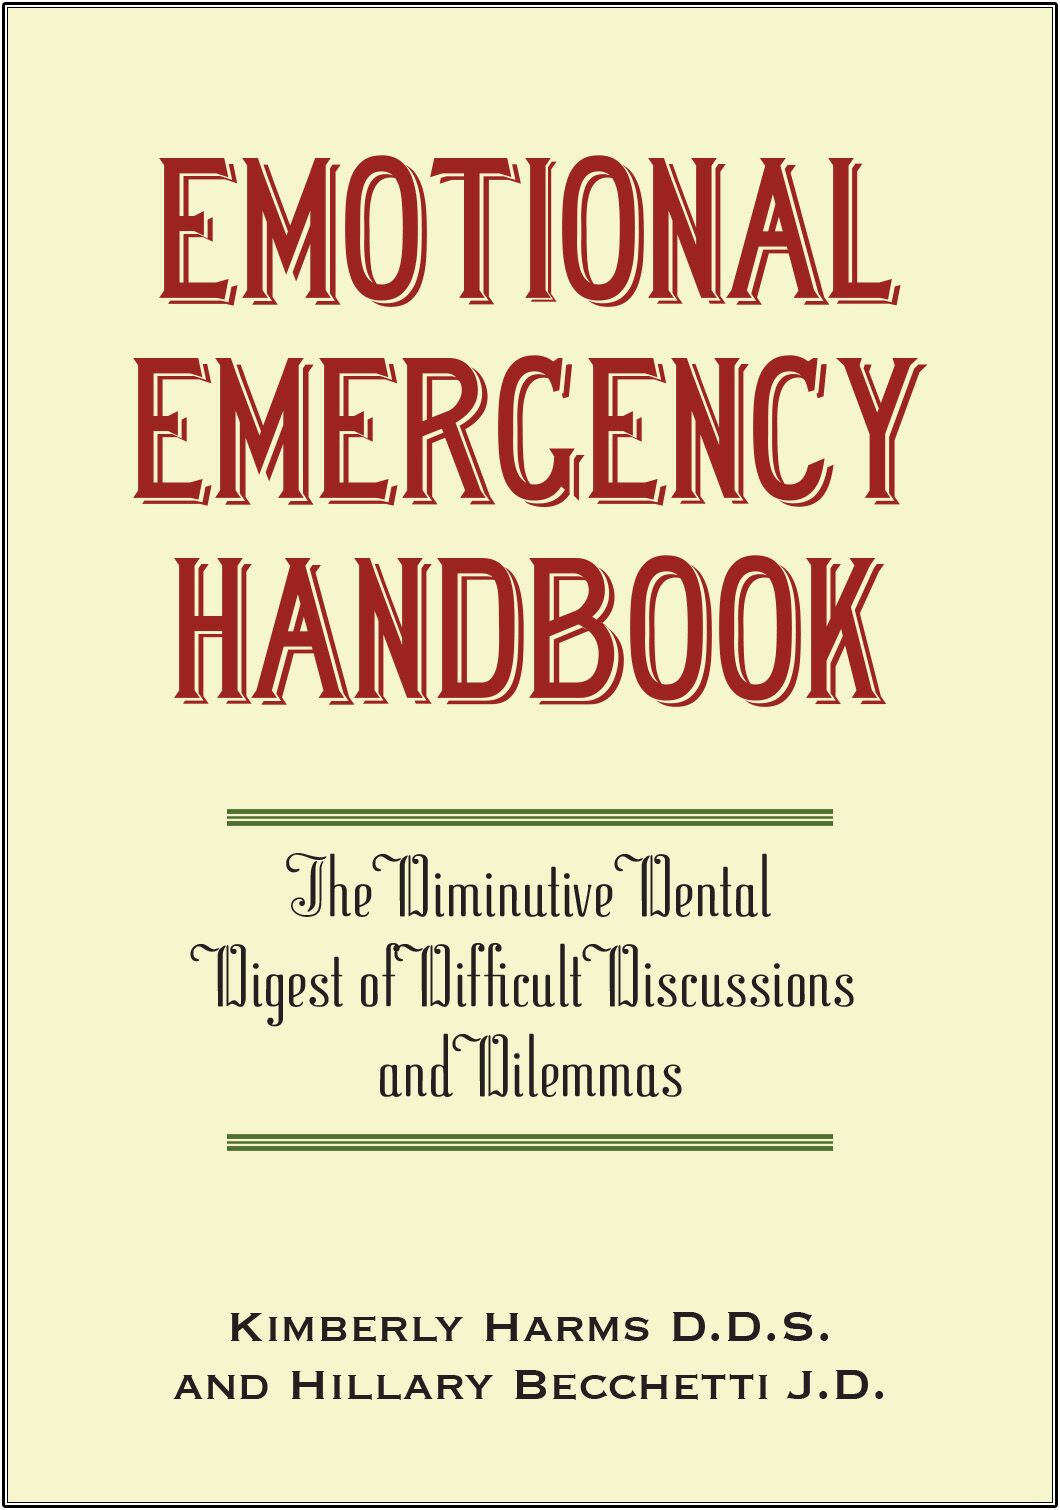 Emotional Emergency Handbook by Kimberly Harms DDS